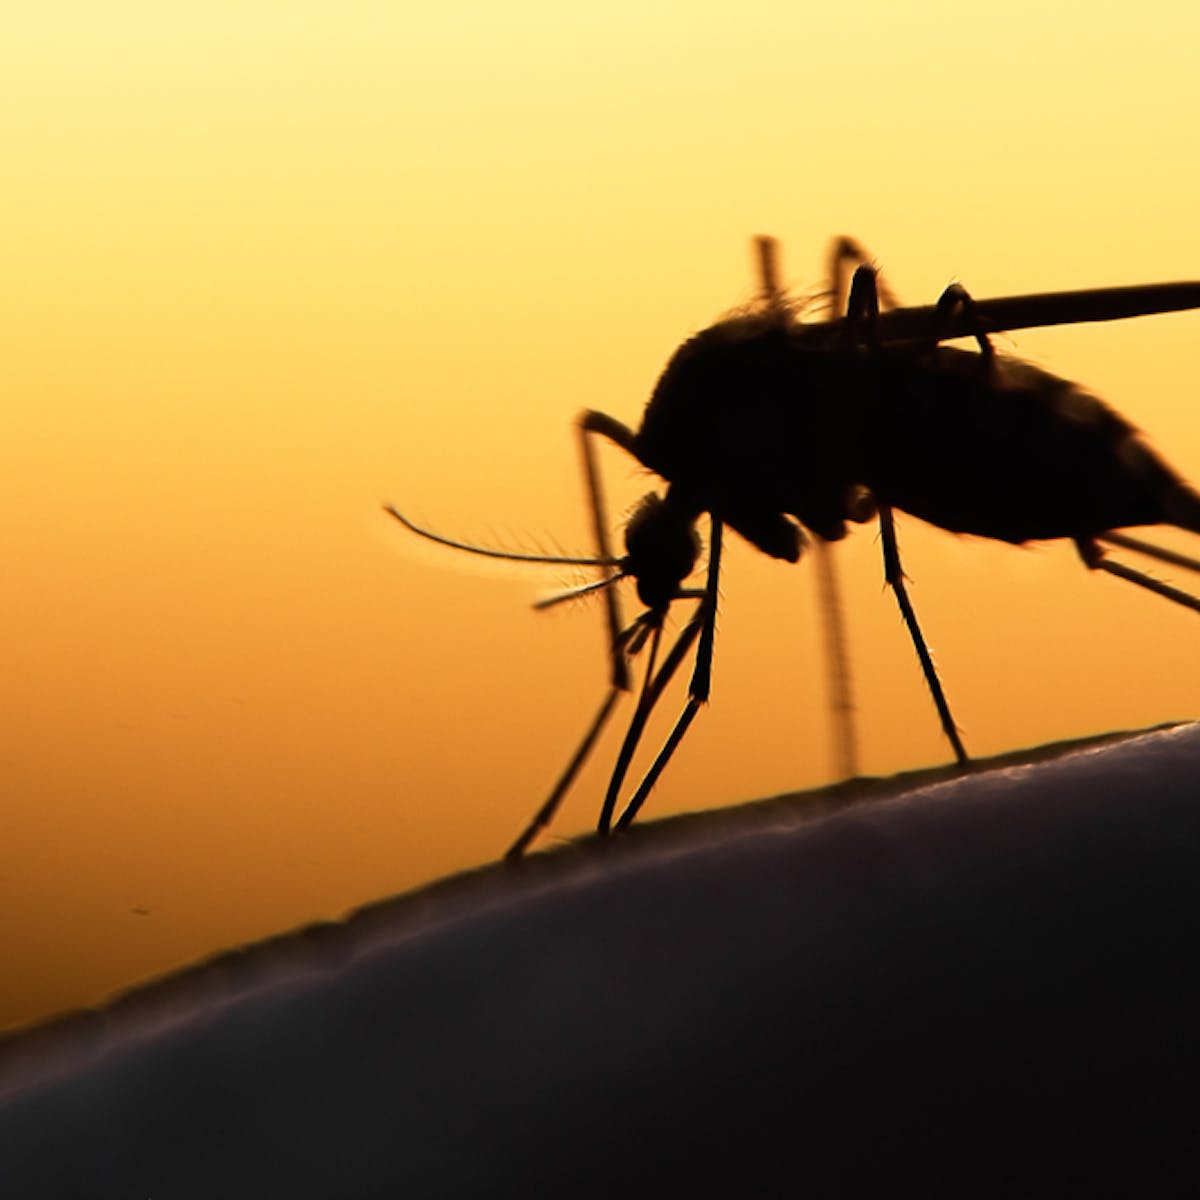 Debunking myths about malaria and its vector, the mosquito